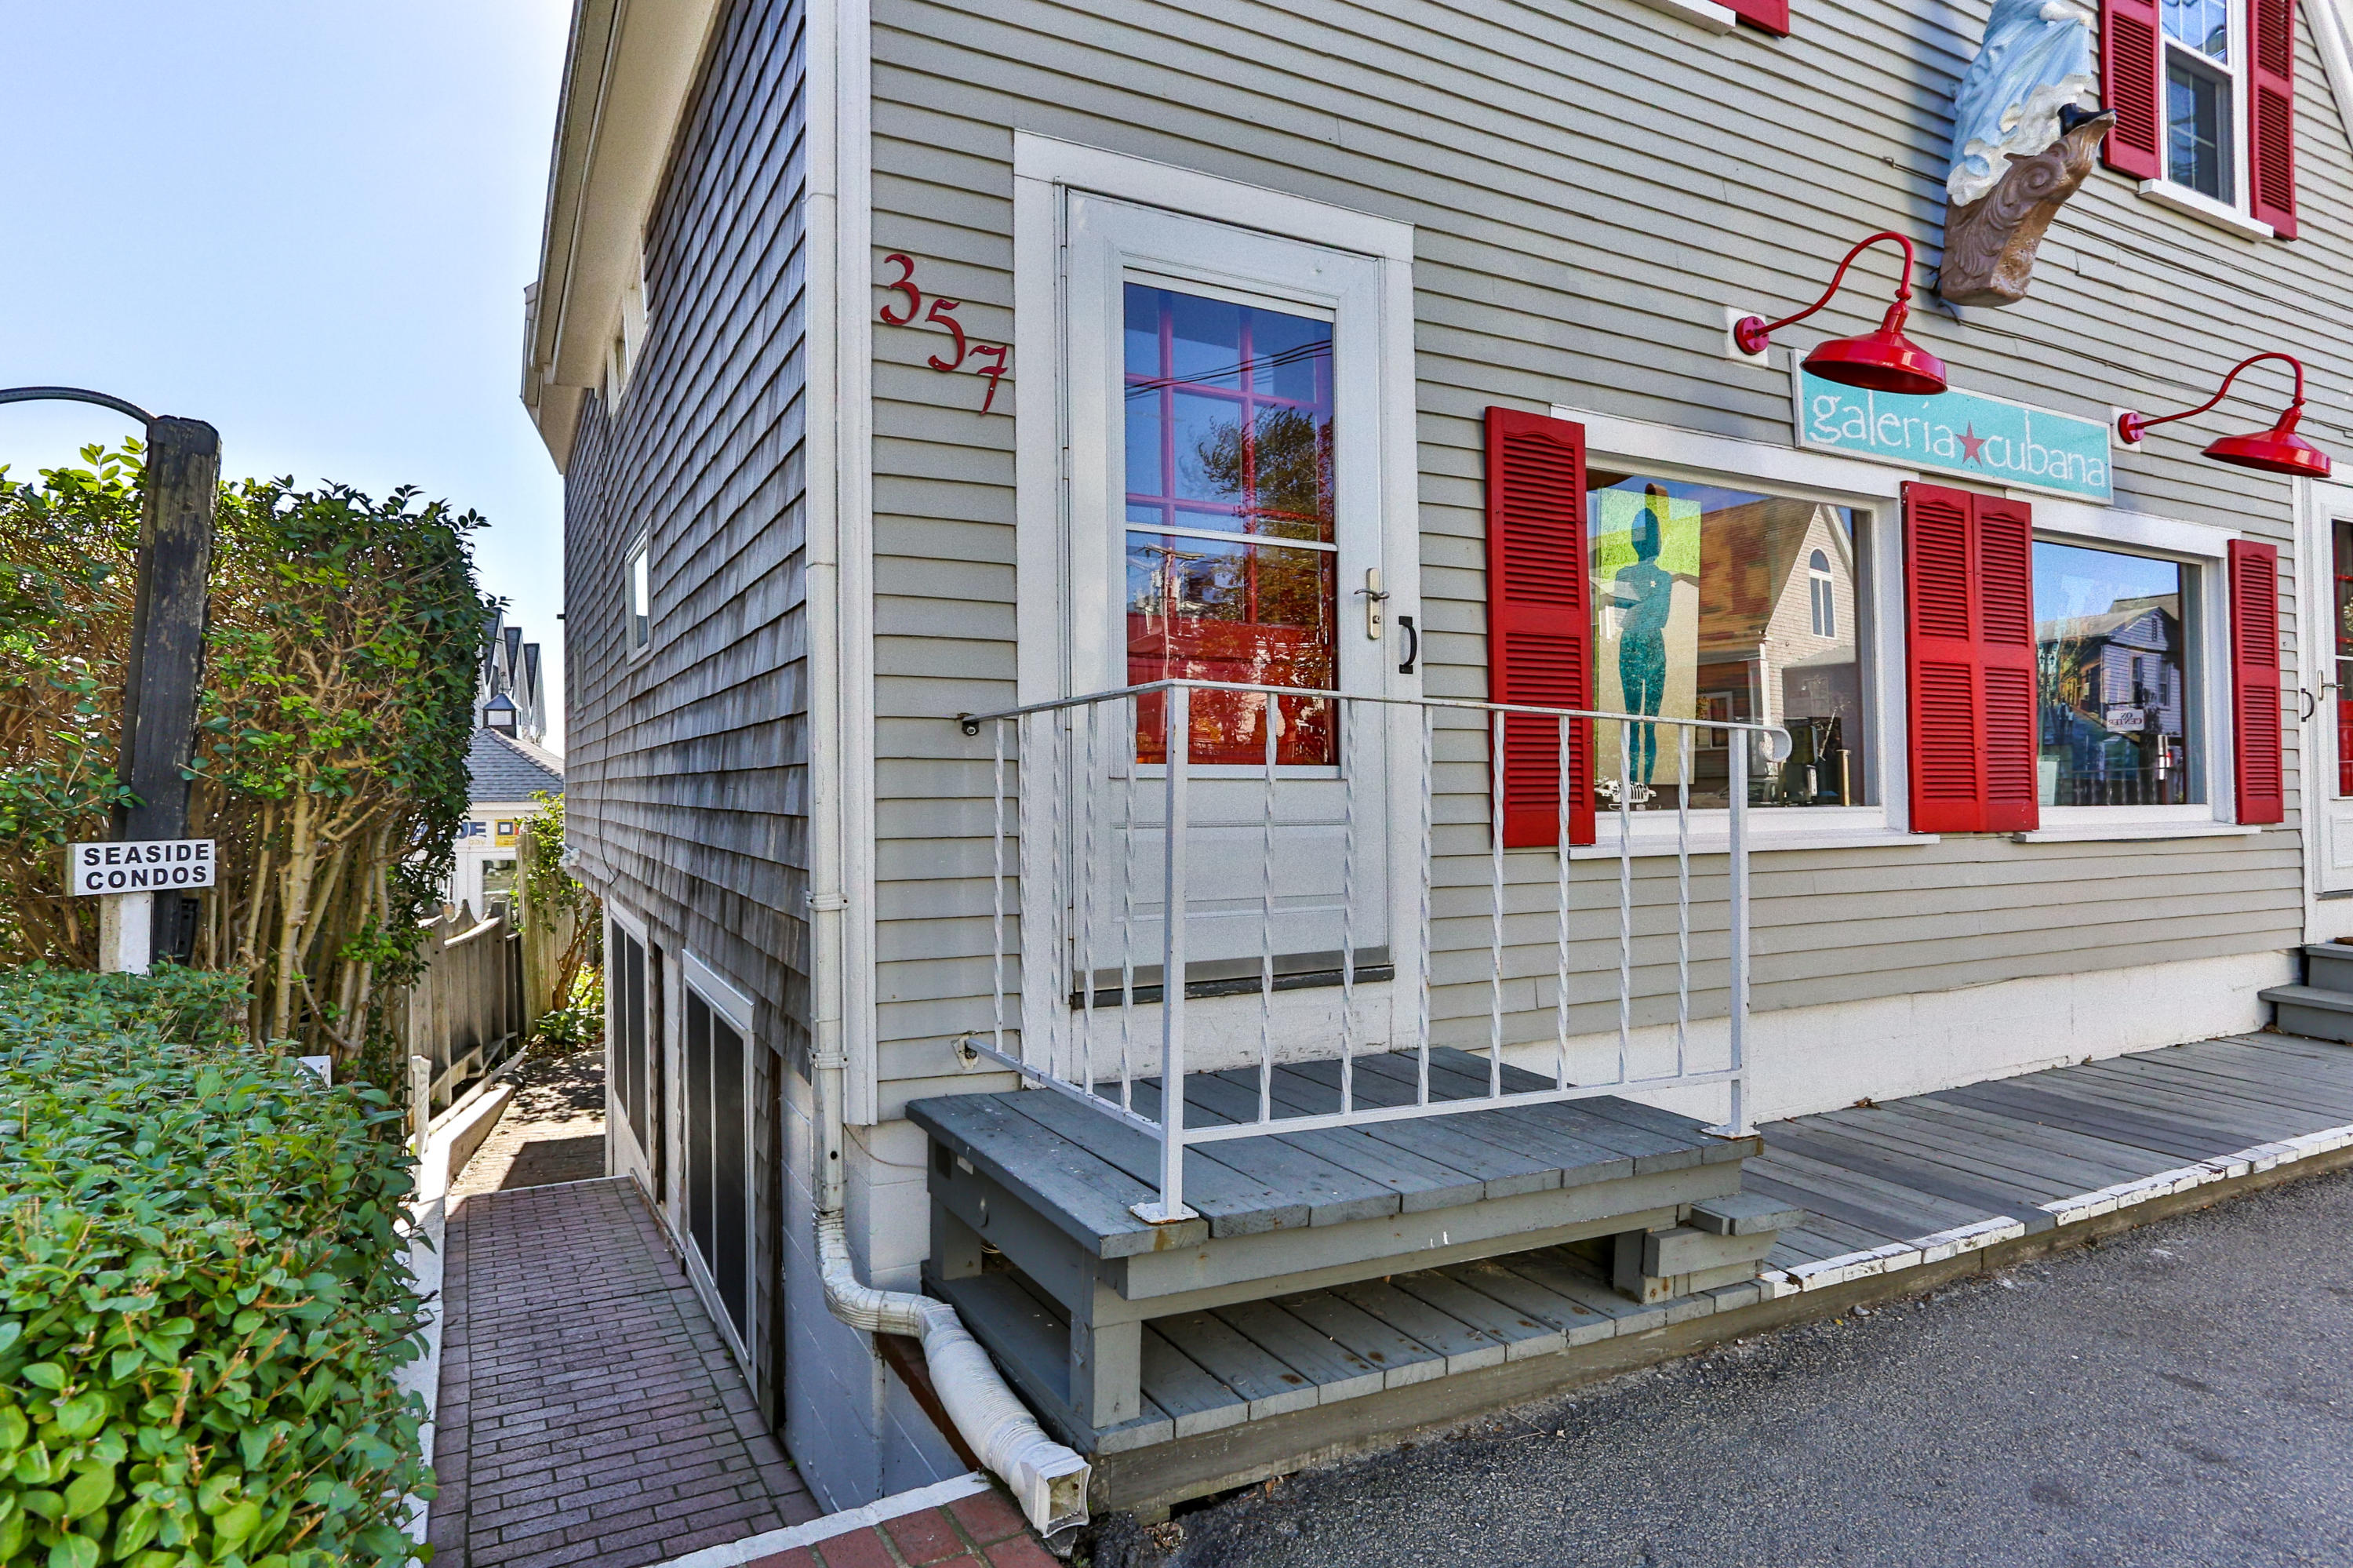 357 Commercial Street, Provincetown MA, 02657 details